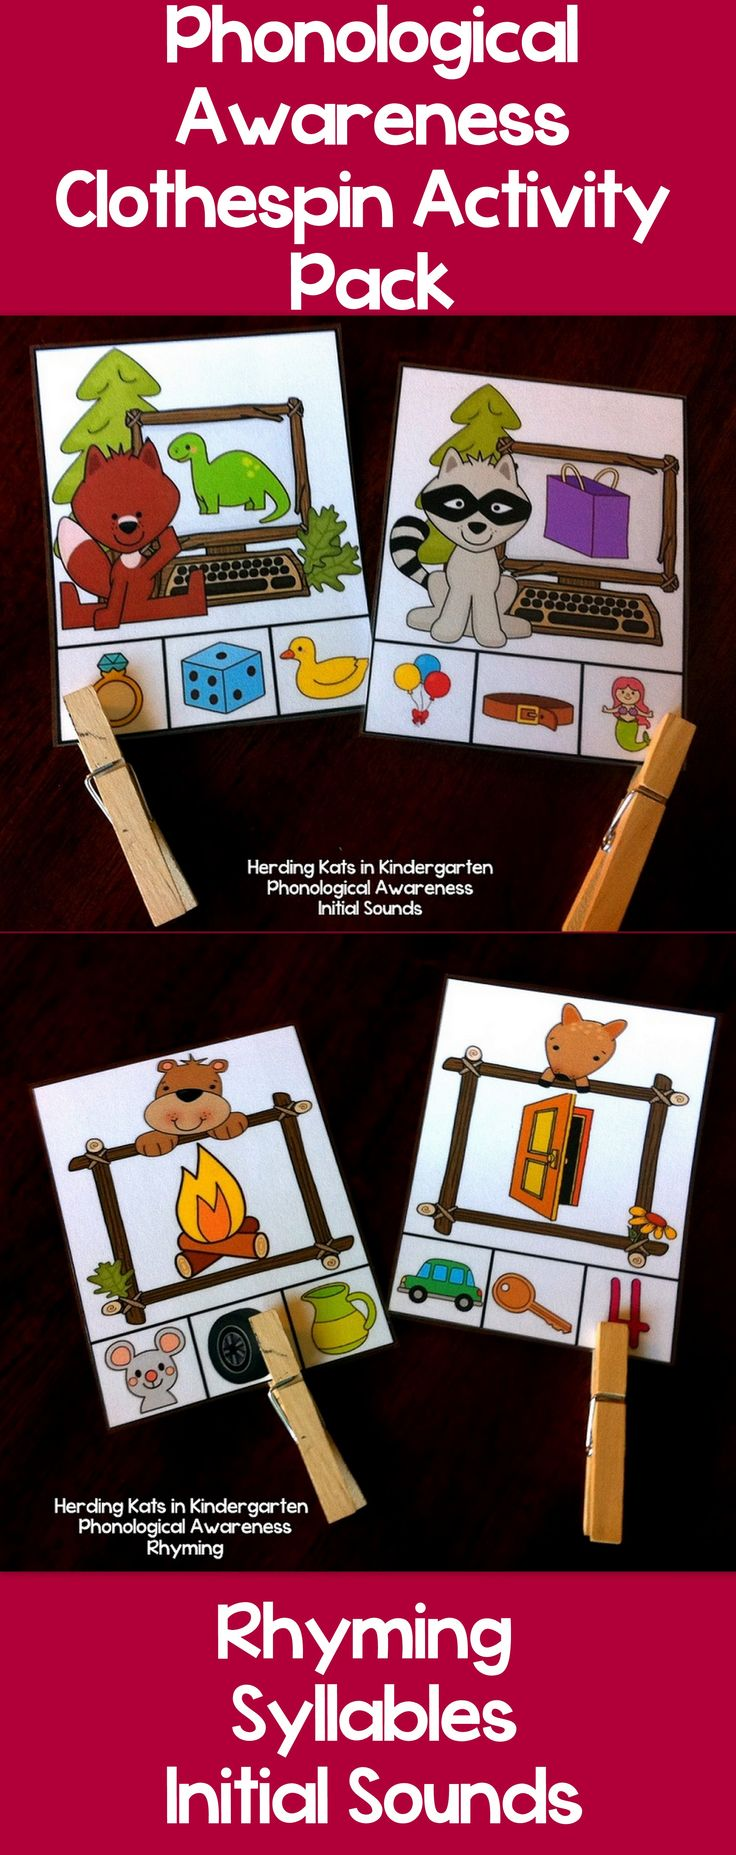 Phonological Awareness Clothespin Activity Pack - covers Rhyming, Syllables & Initial Sounds - great for small groups or work station/centers! Perfect for Pre-k and Kindergarten and as remediation for 1st graders! Phonological Awareness skills are precursors for reading and this pack provides lots of fun practice with these key skills!